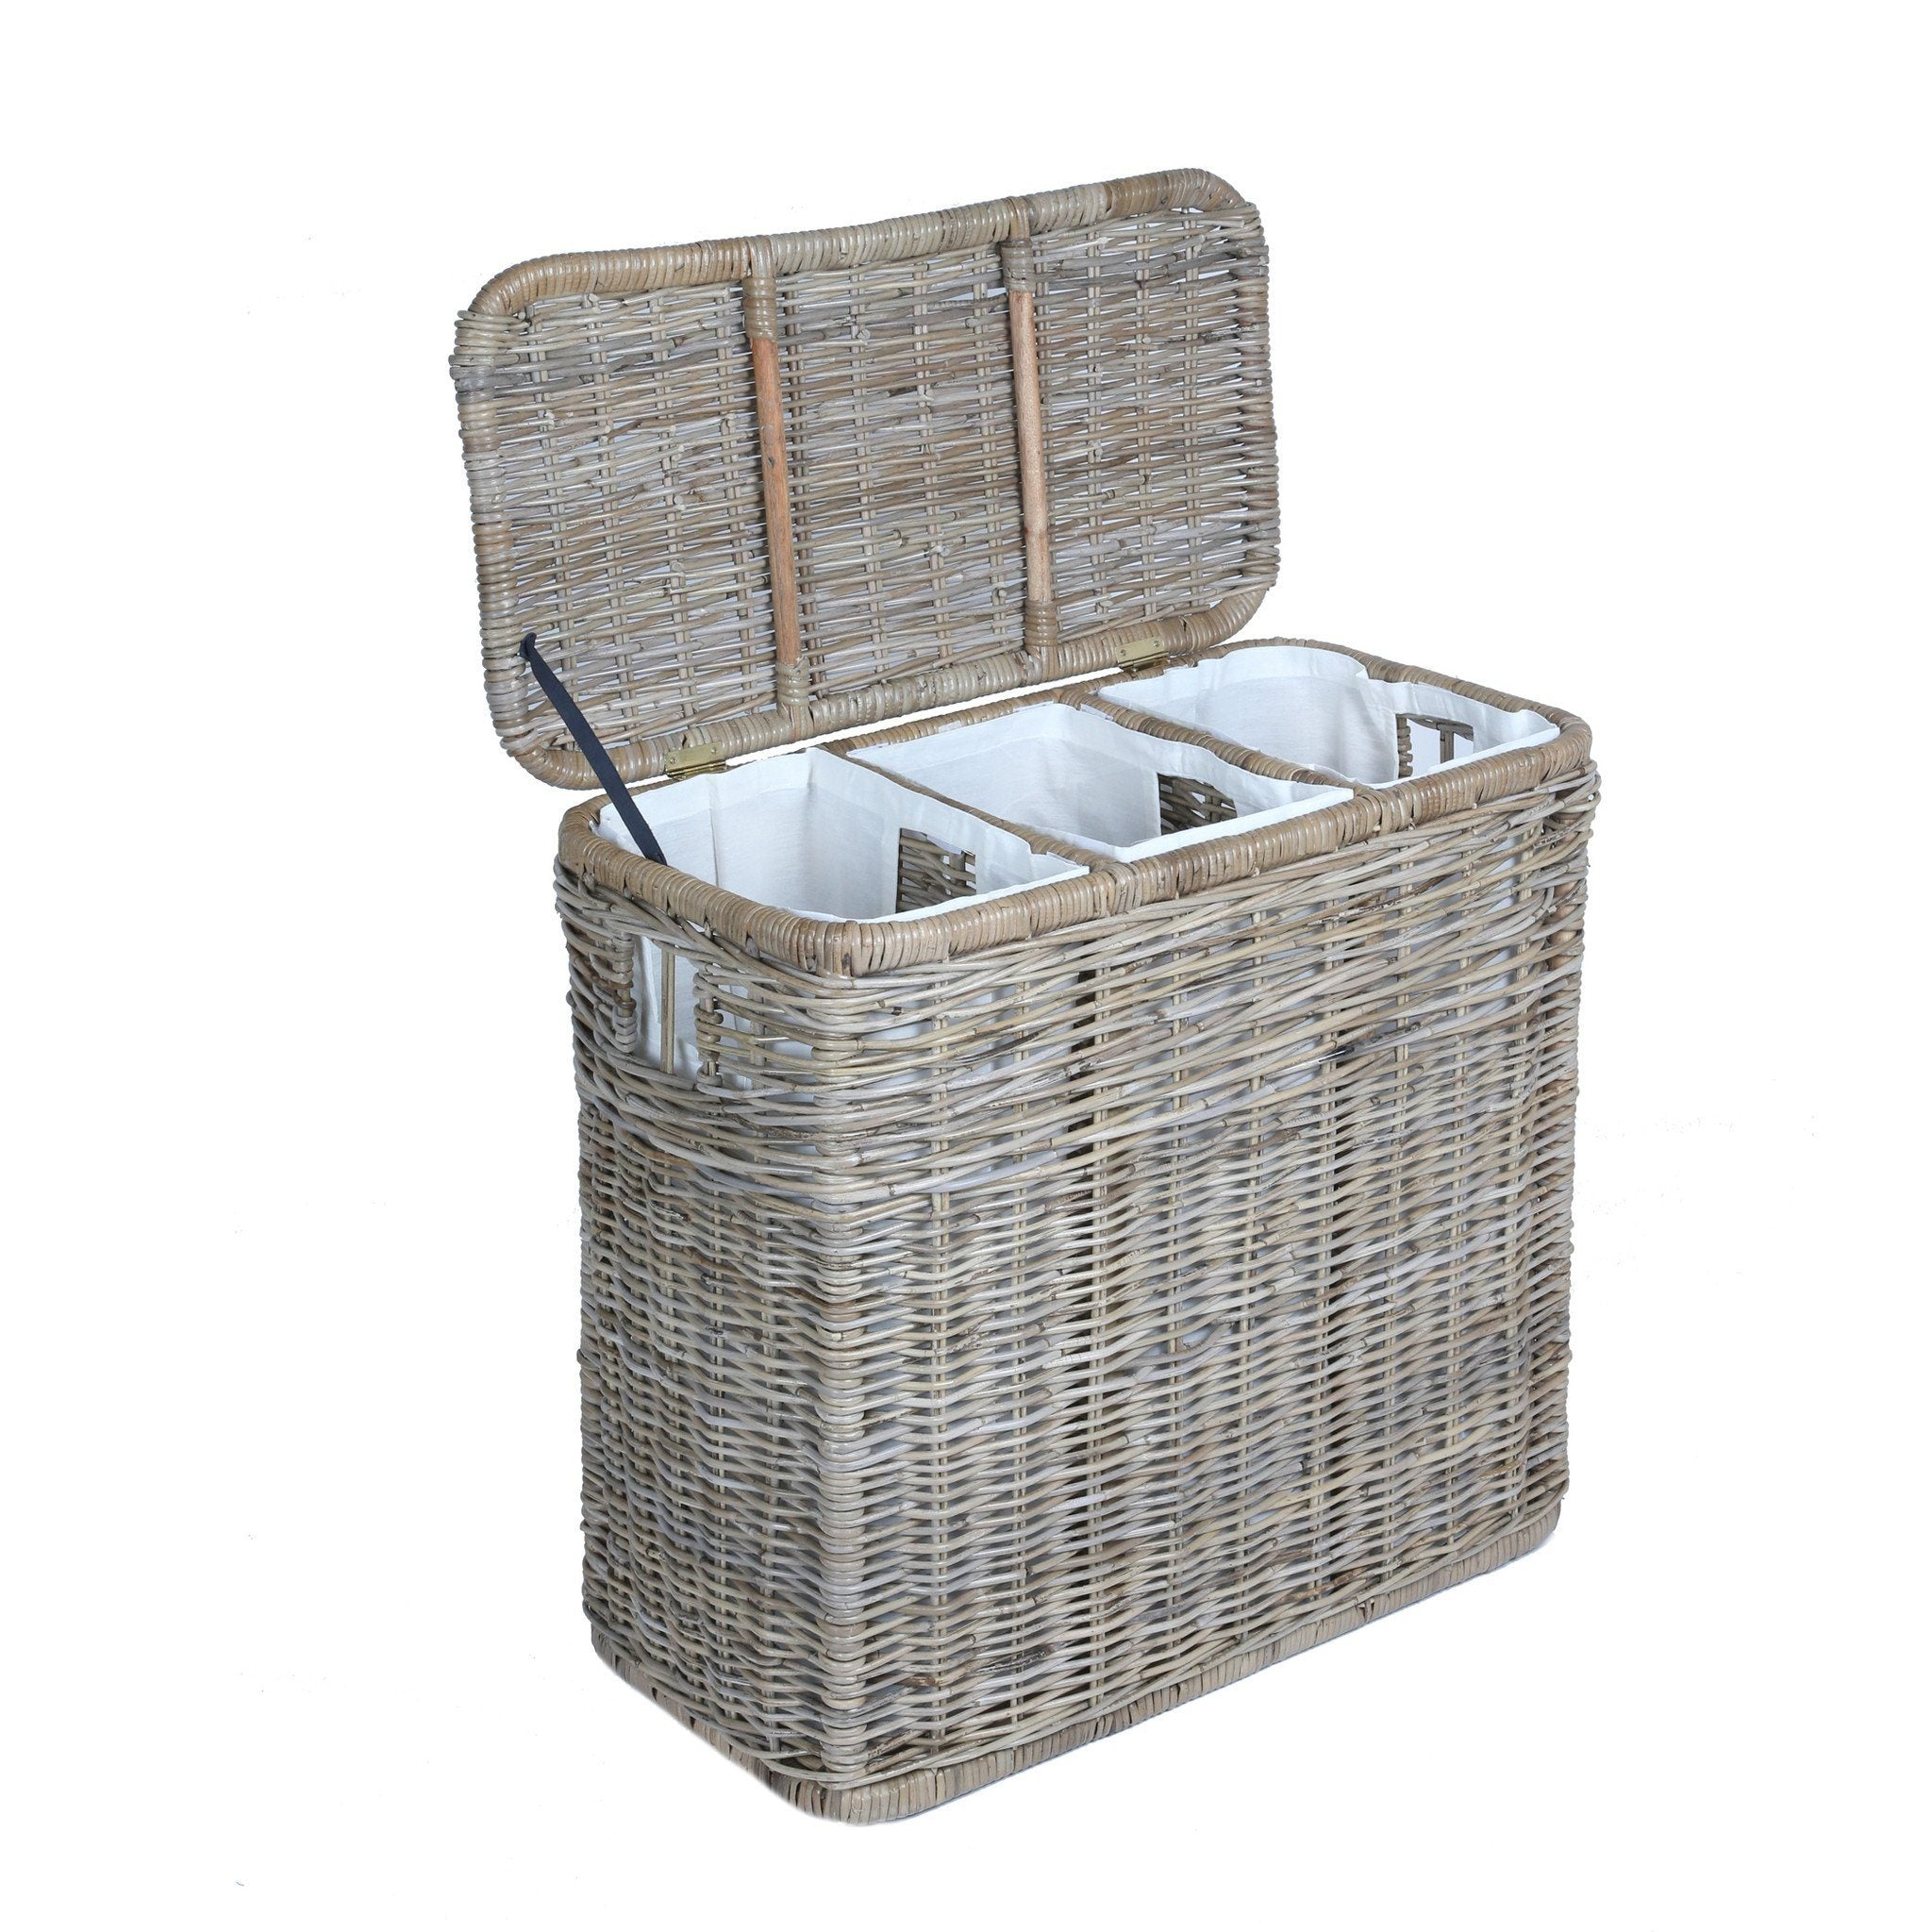 3 compartment kubu wicker laundry hamper the basket lady - Rattan clothes hamper ...